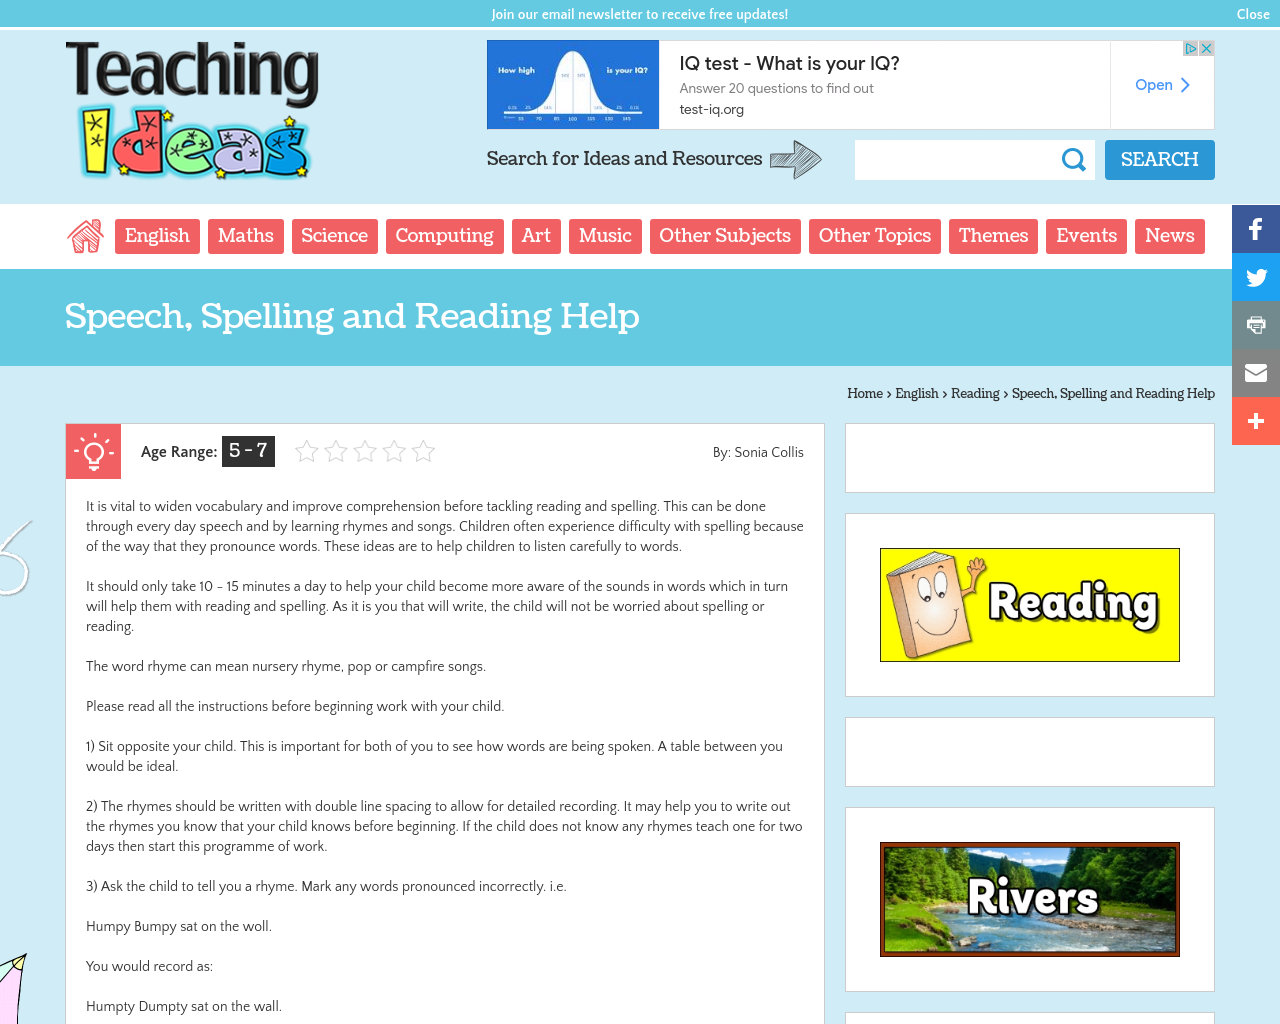 Speech, Spelling and Reading Help